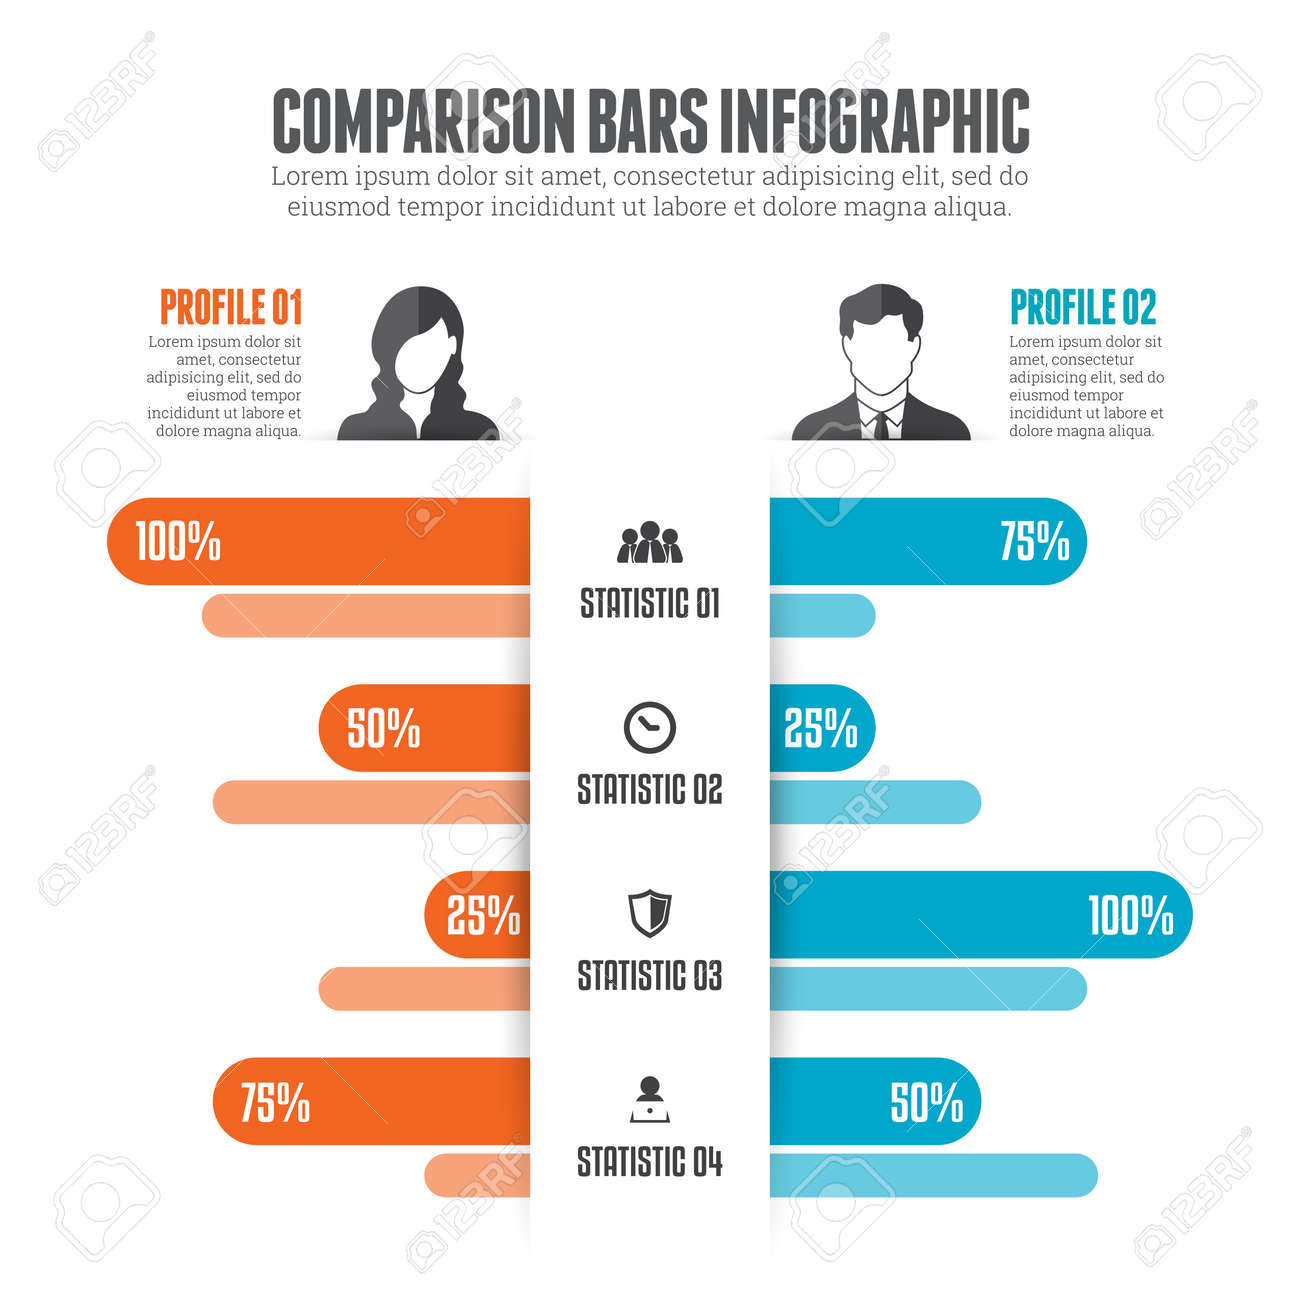 illustration of comparison bars infographic design element royalty